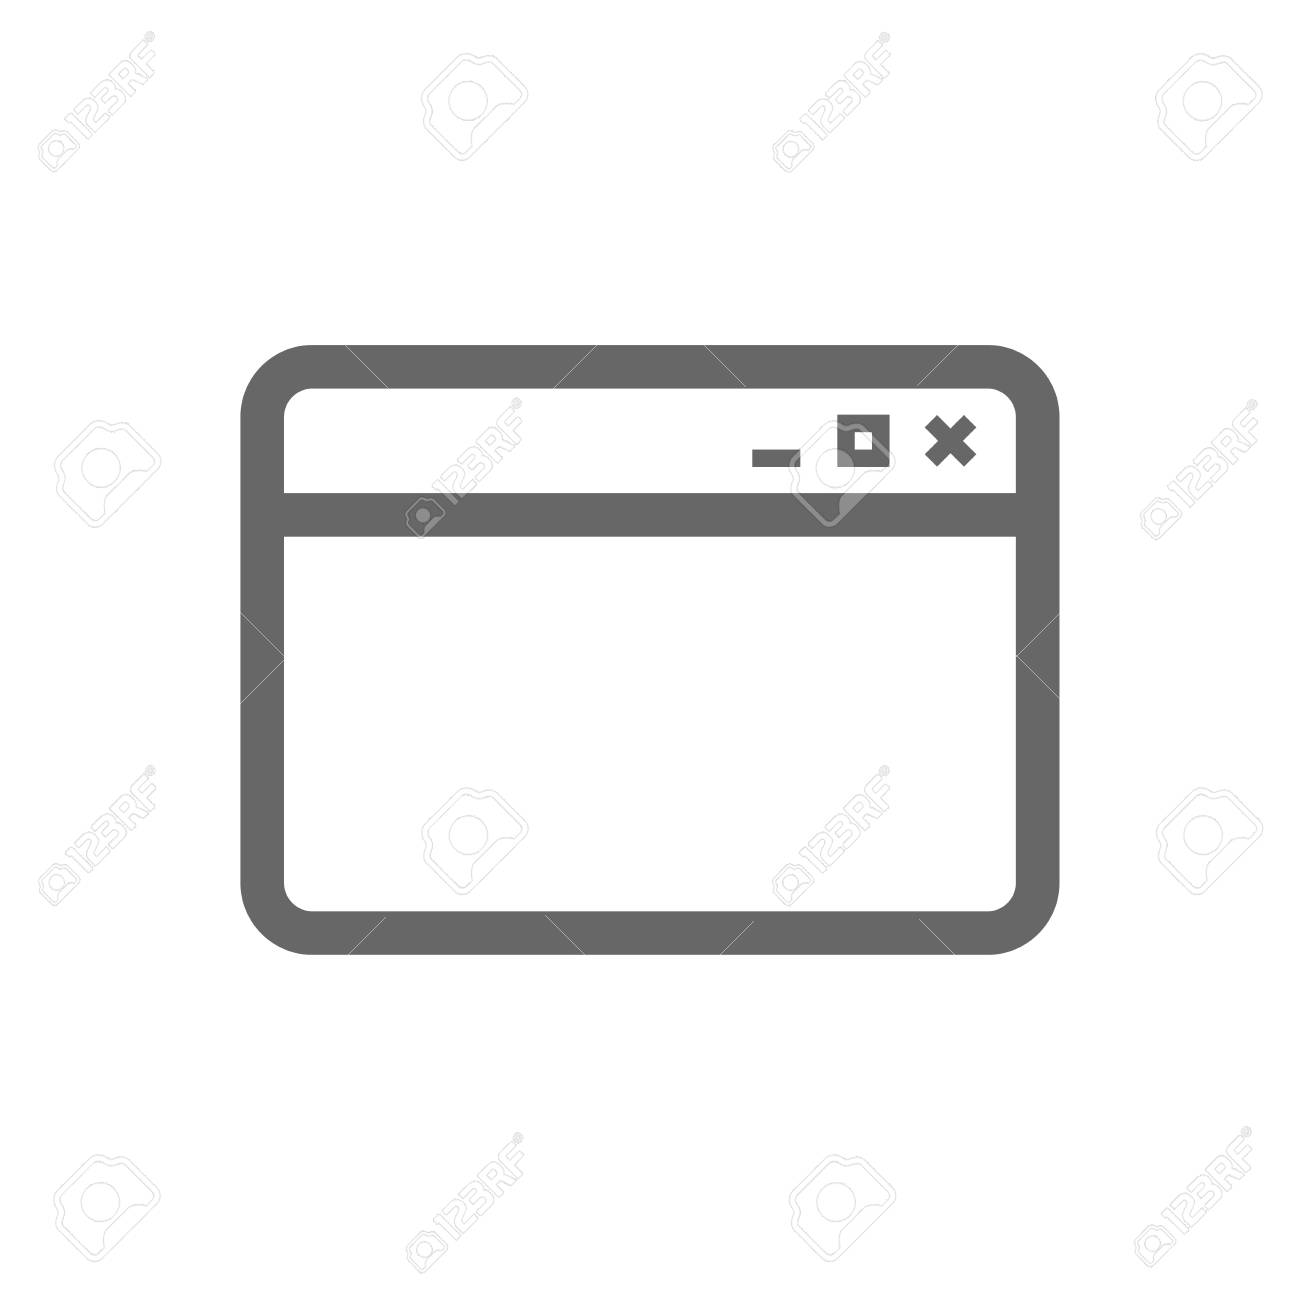 Browser window icon internet page symbol website empty template internet page symbol website empty template sign isolated flat icon buycottarizona Gallery